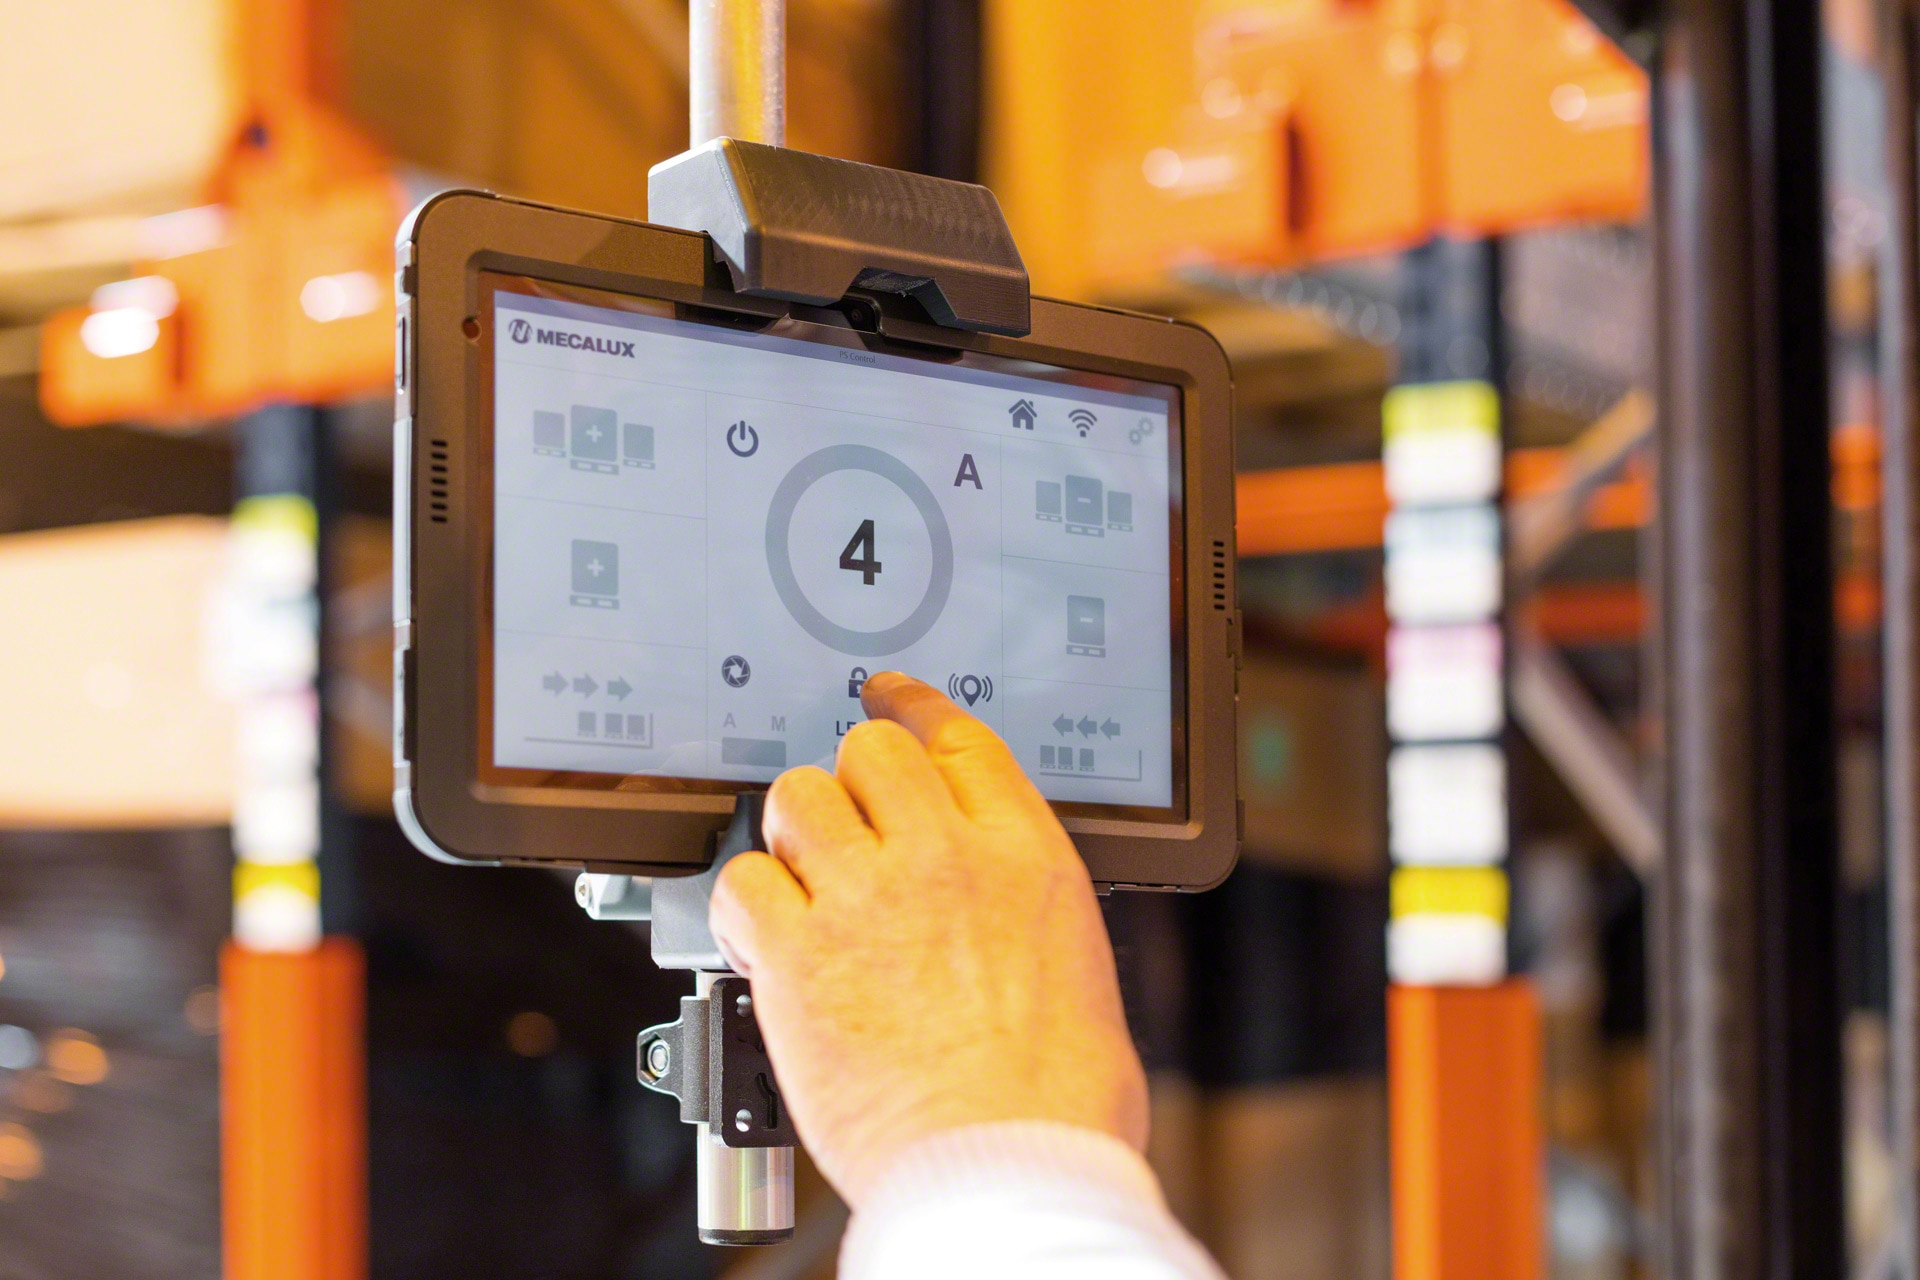 Pallet Shuttle system is remotely controlled via a Wi-Fi connected tablet